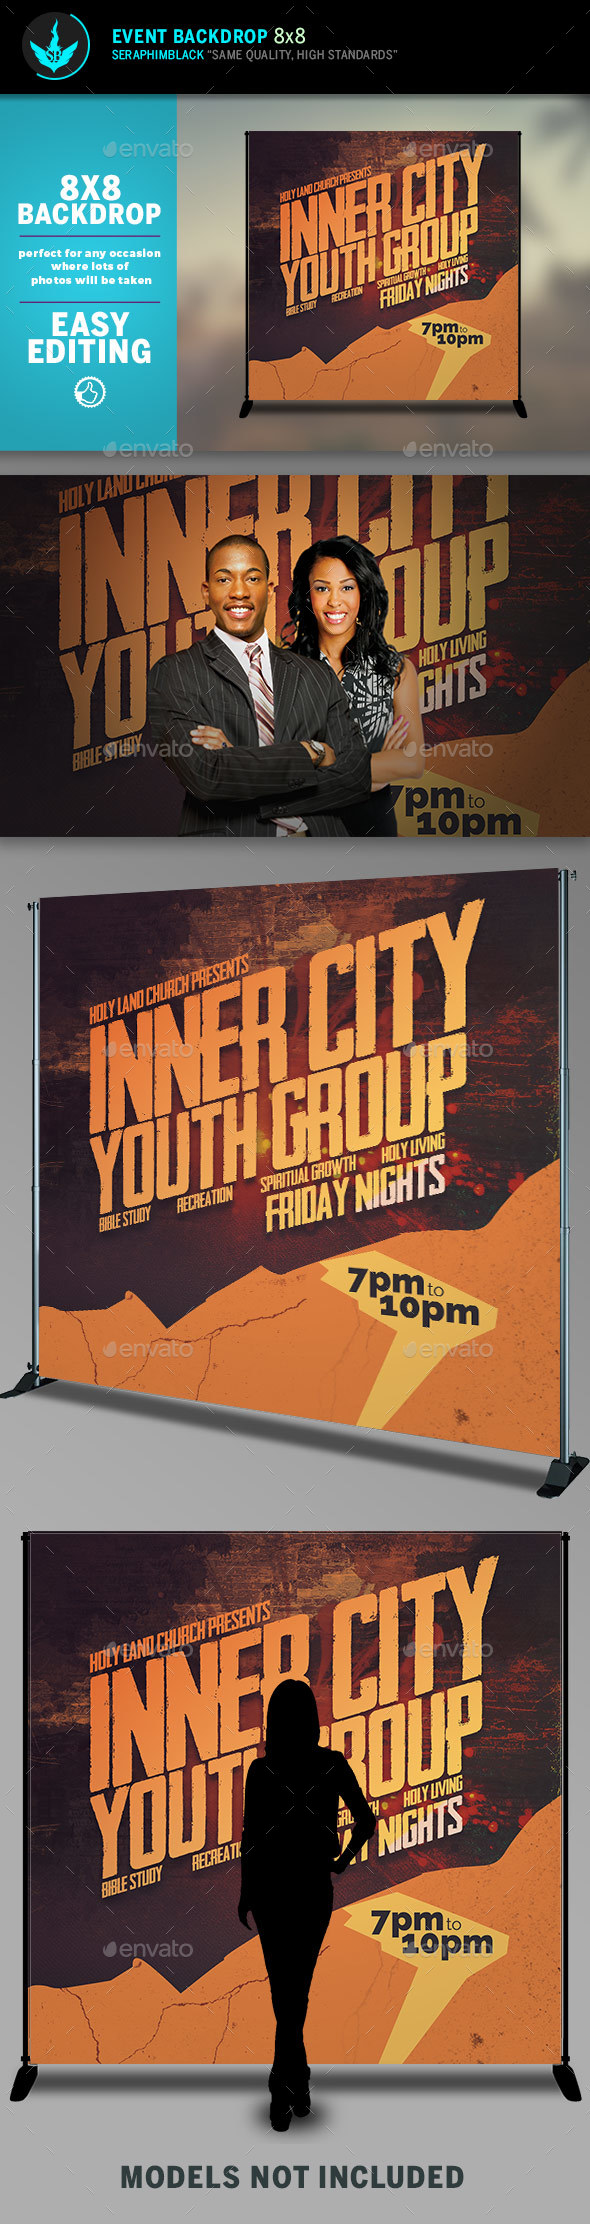 Inner City Youth Group 8x8 Event Backdrop Template - Signage Print Templates